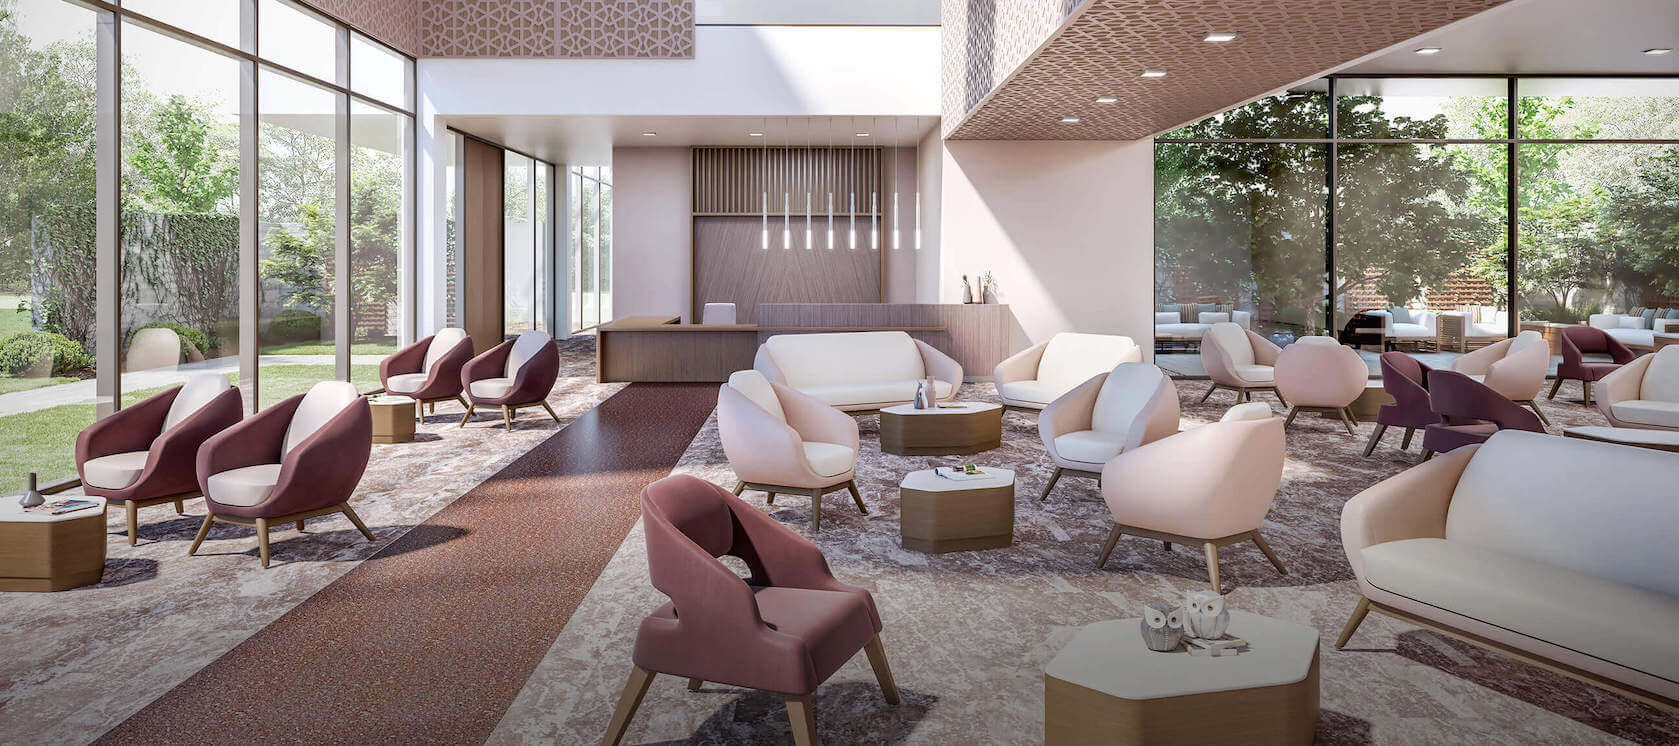 Inviting Spaces lobby